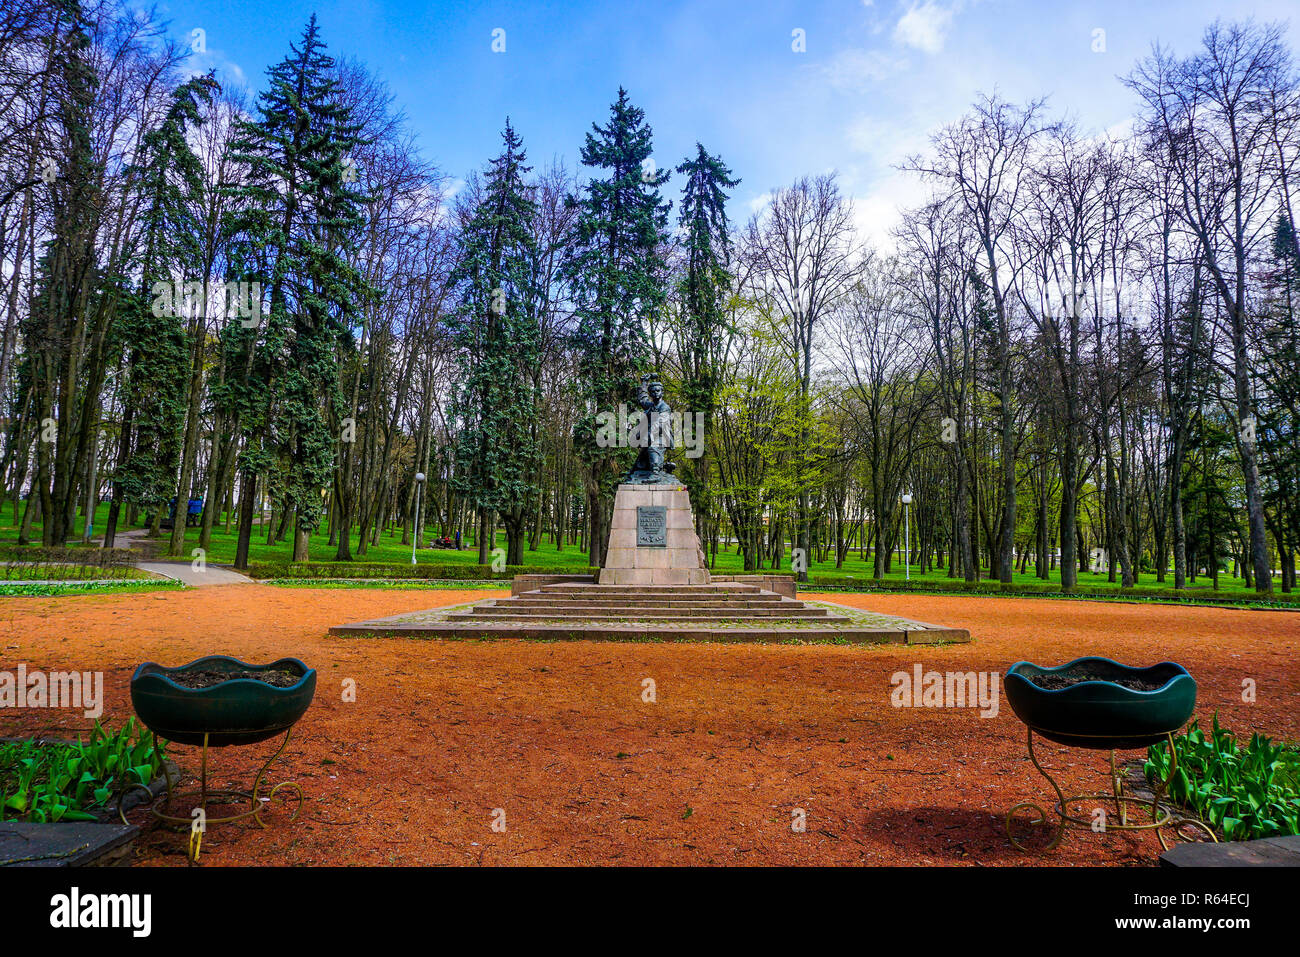 Minsk Marat Kazei Monument at Park with Trees and Cloudy Blue Sky Background - Stock Image